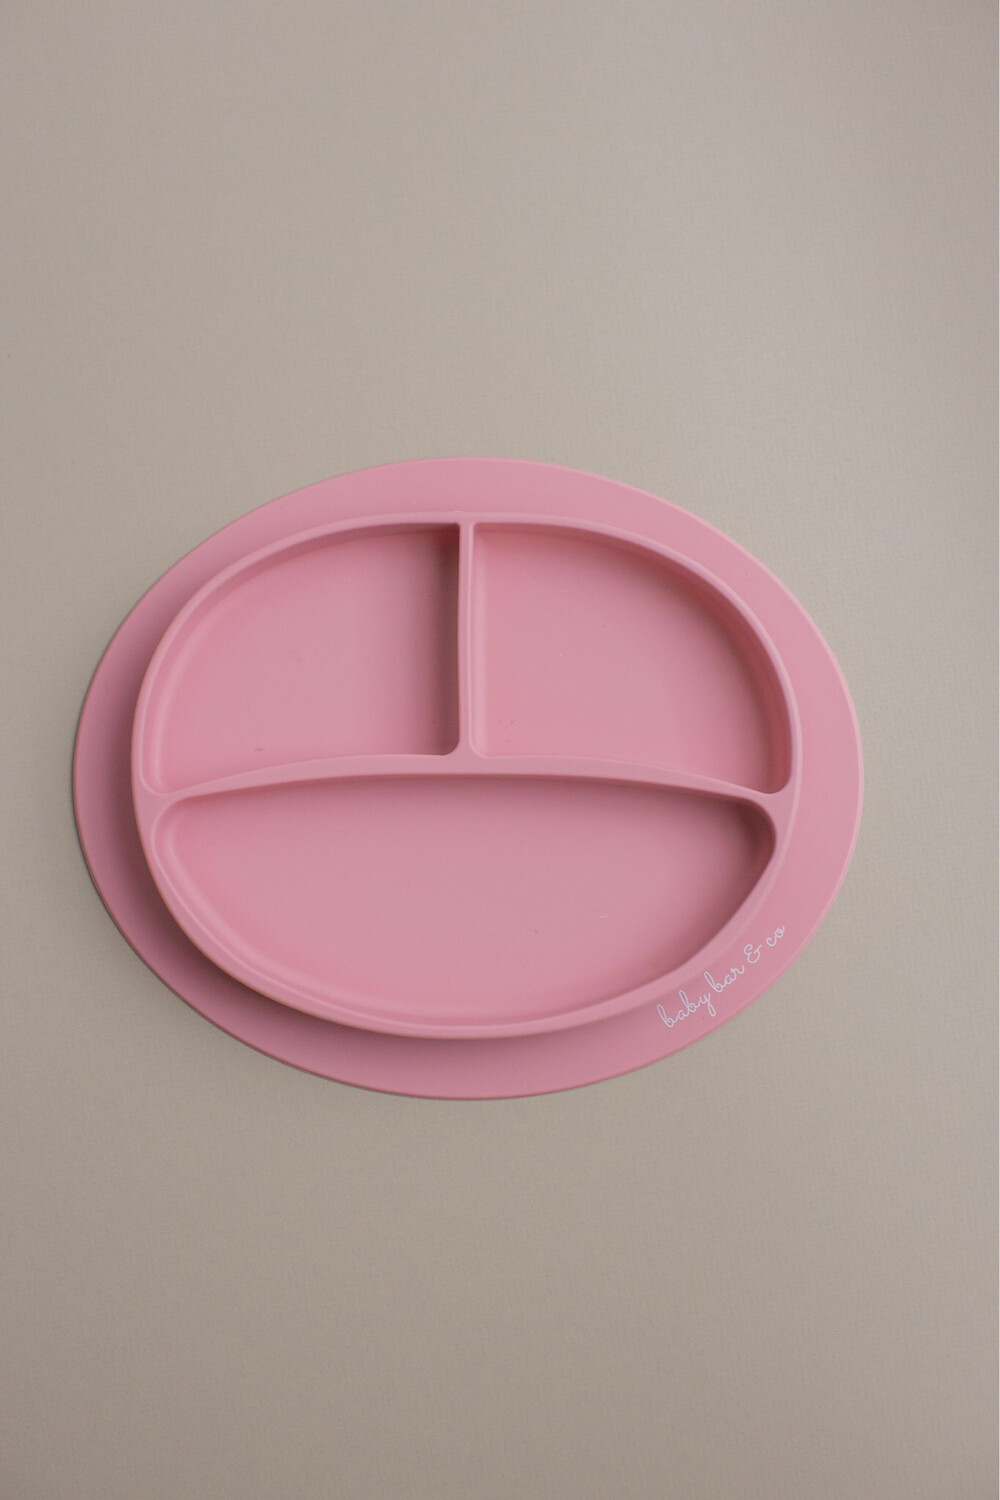 Three Hearts Silicone Plate